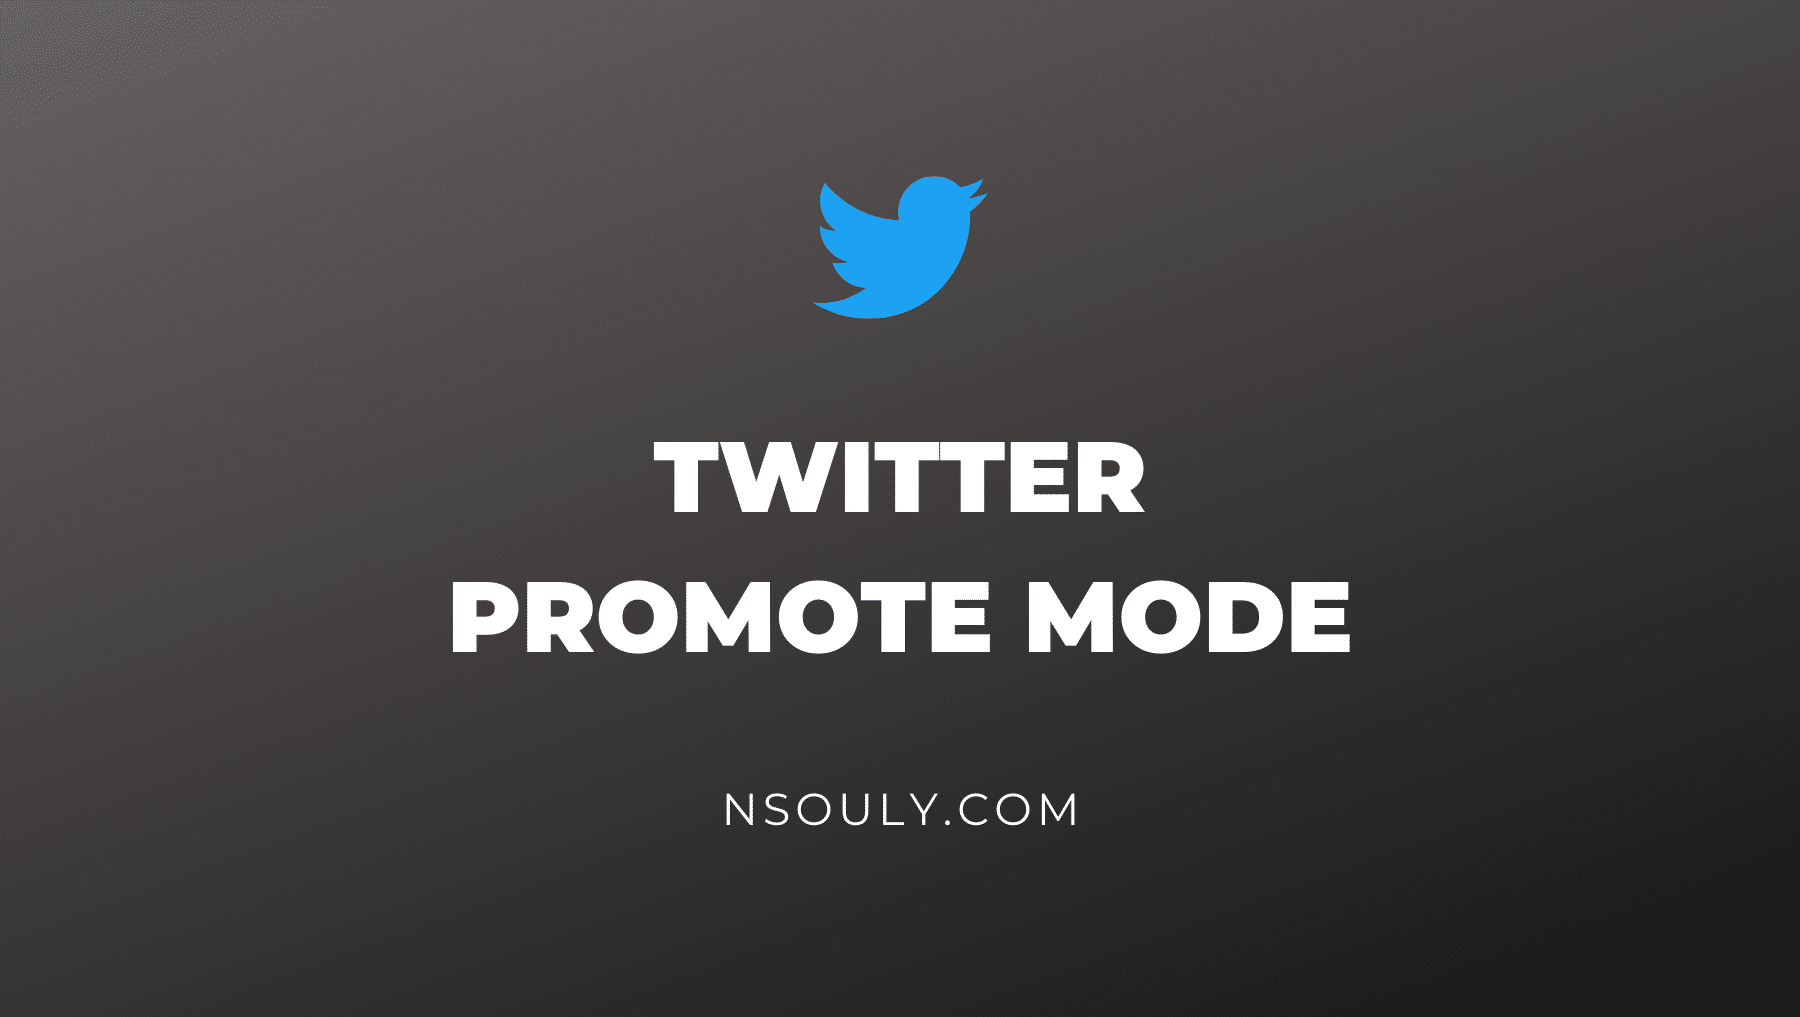 Twitter Promote Mode: The Pros and Cons and Should You Use it?